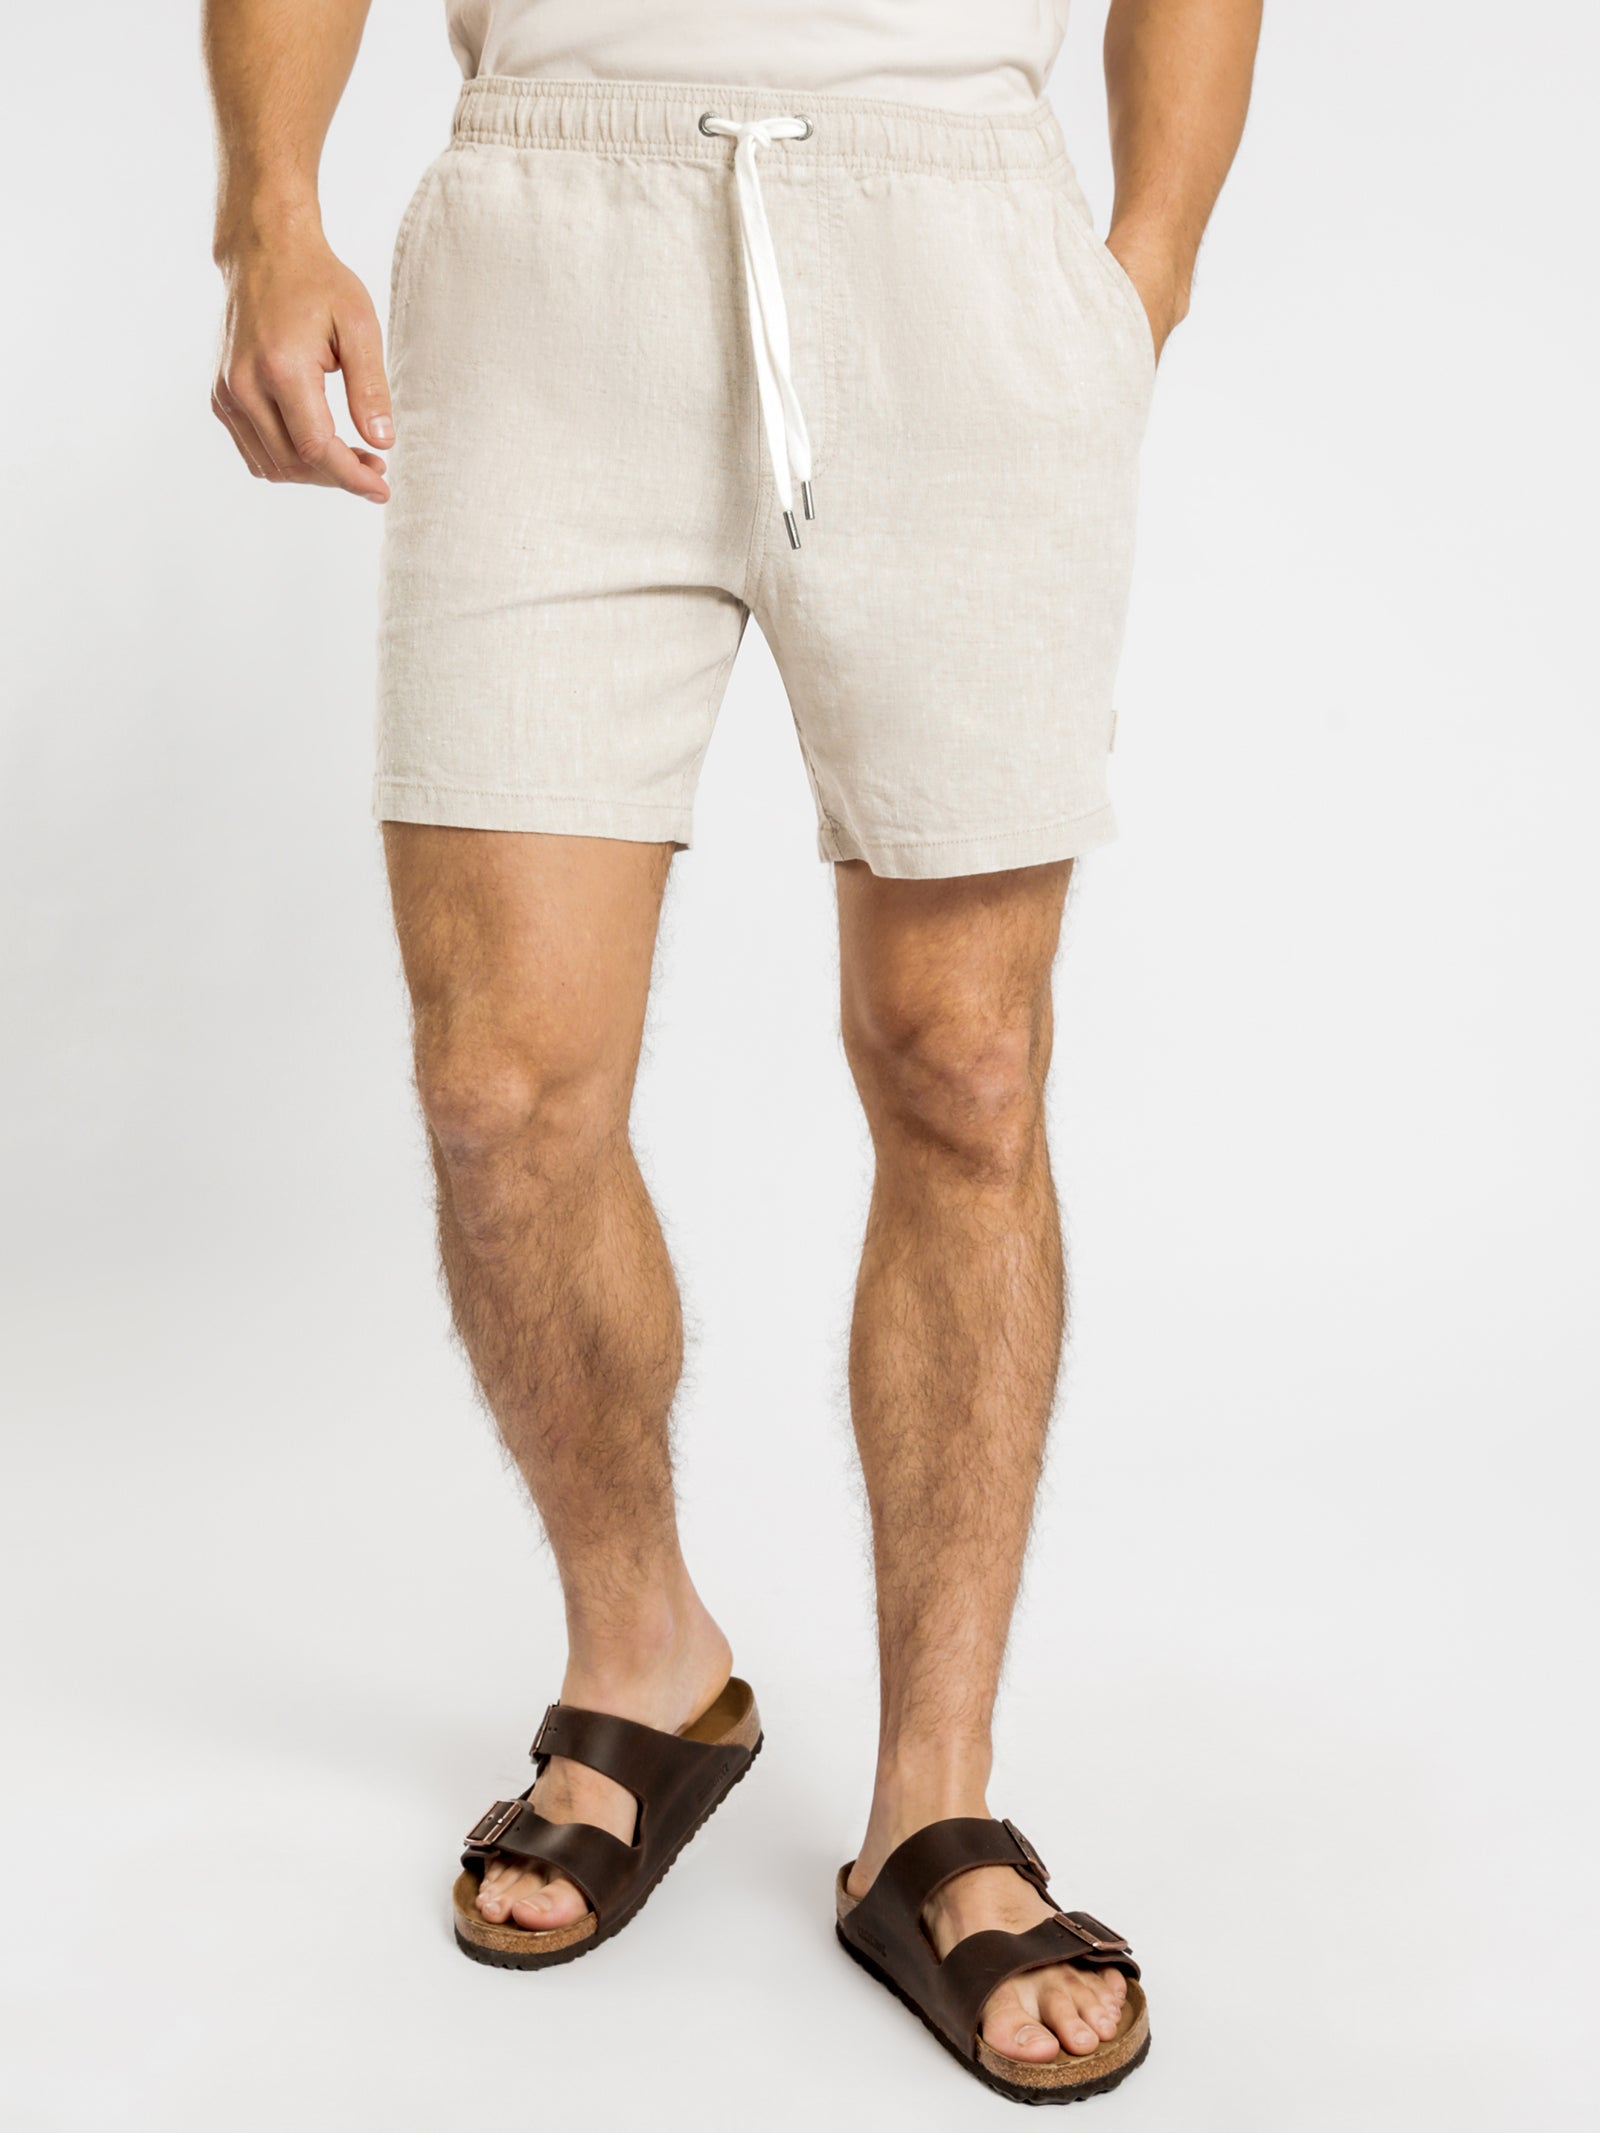 Nelson Shorts in Natural Marle Linen